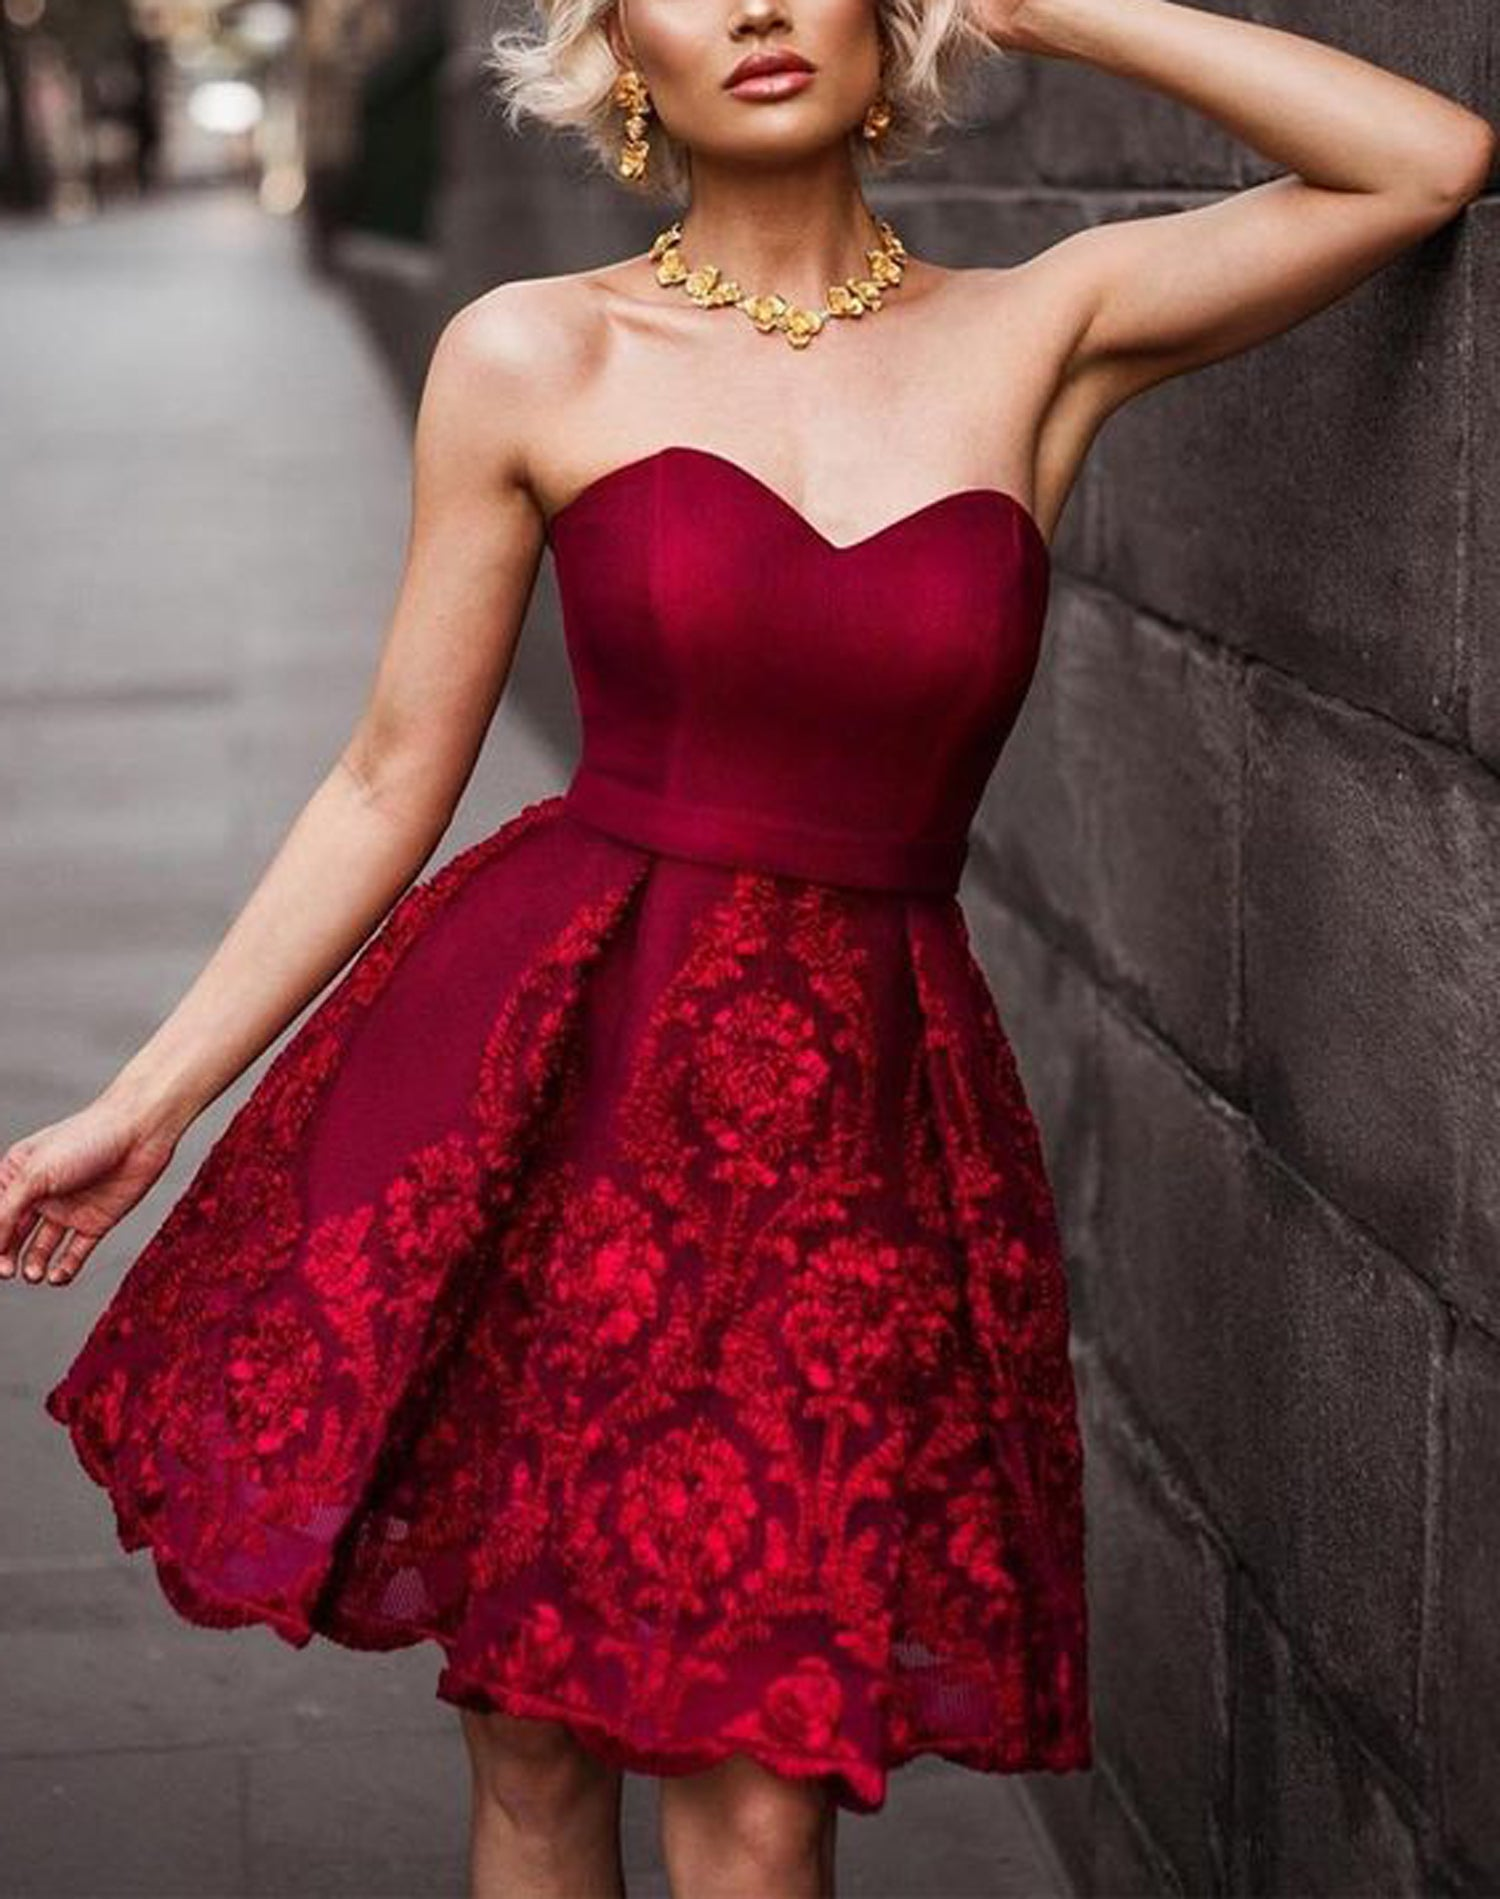 Fancy Christmas Outfit Ideas for New Years 2017 - Red Satin Skater Dress - MyBodiArt.com